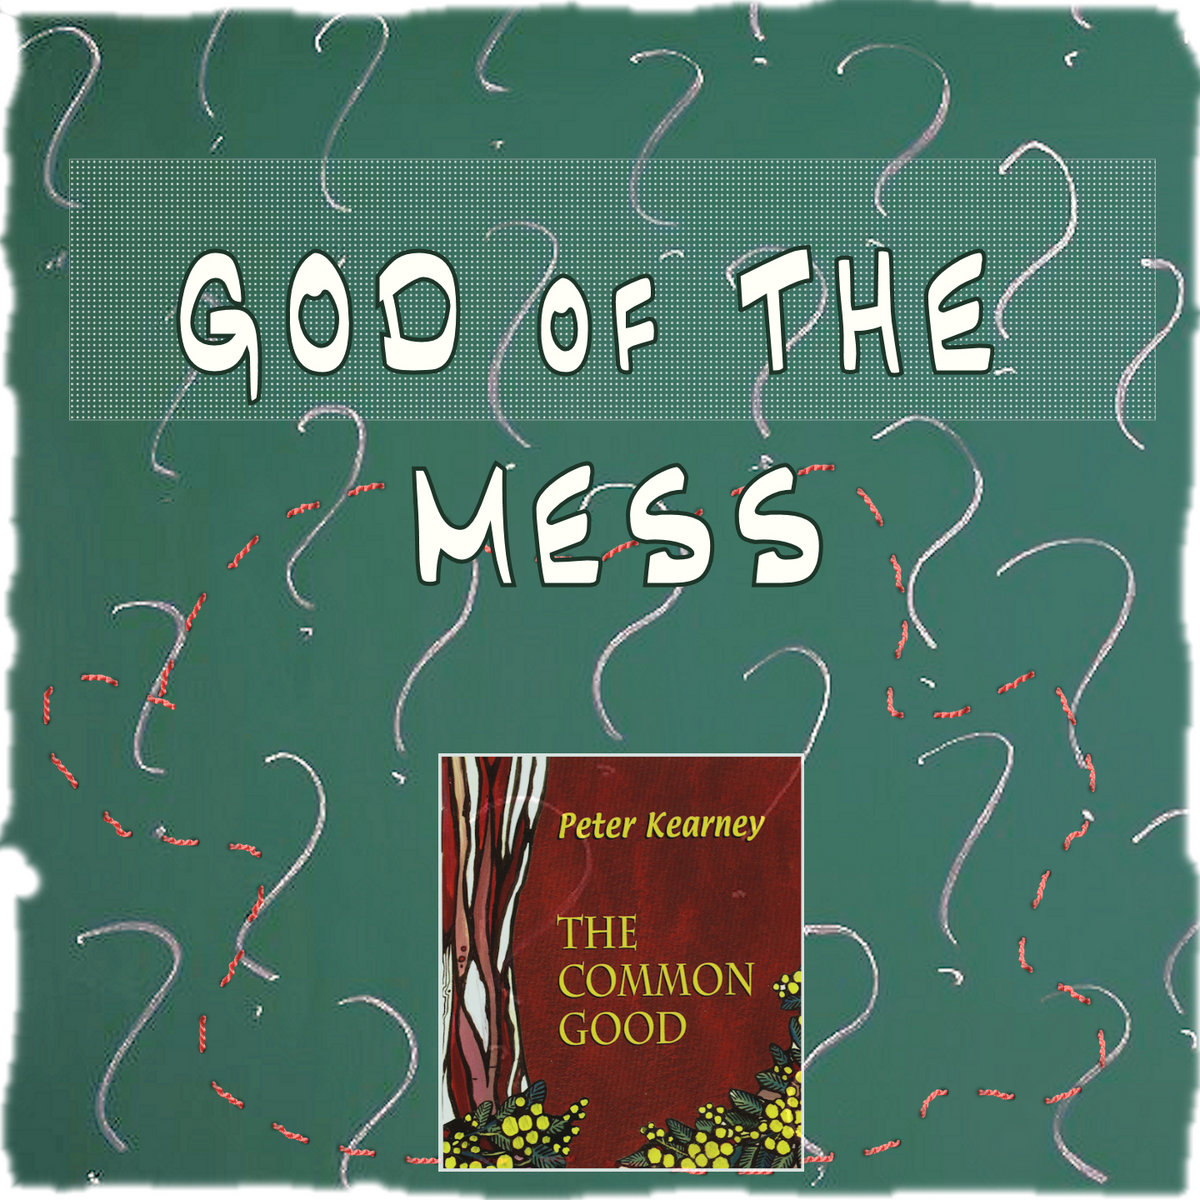 #34 GOD OF THE MESS by Peter Kearney